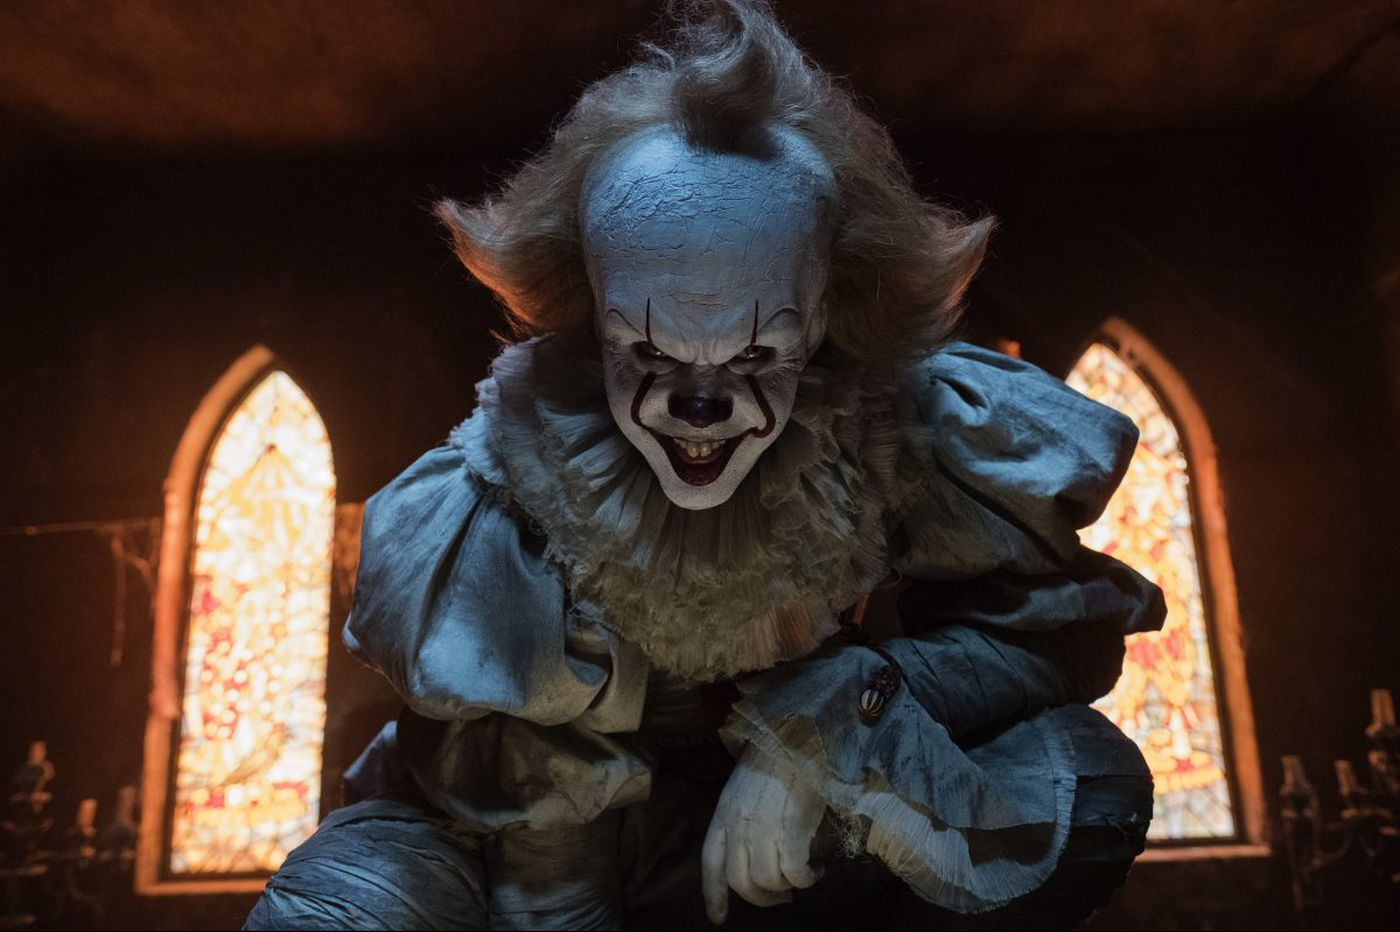 The mind that brought 'It' to the big screen? He's a Temple grad